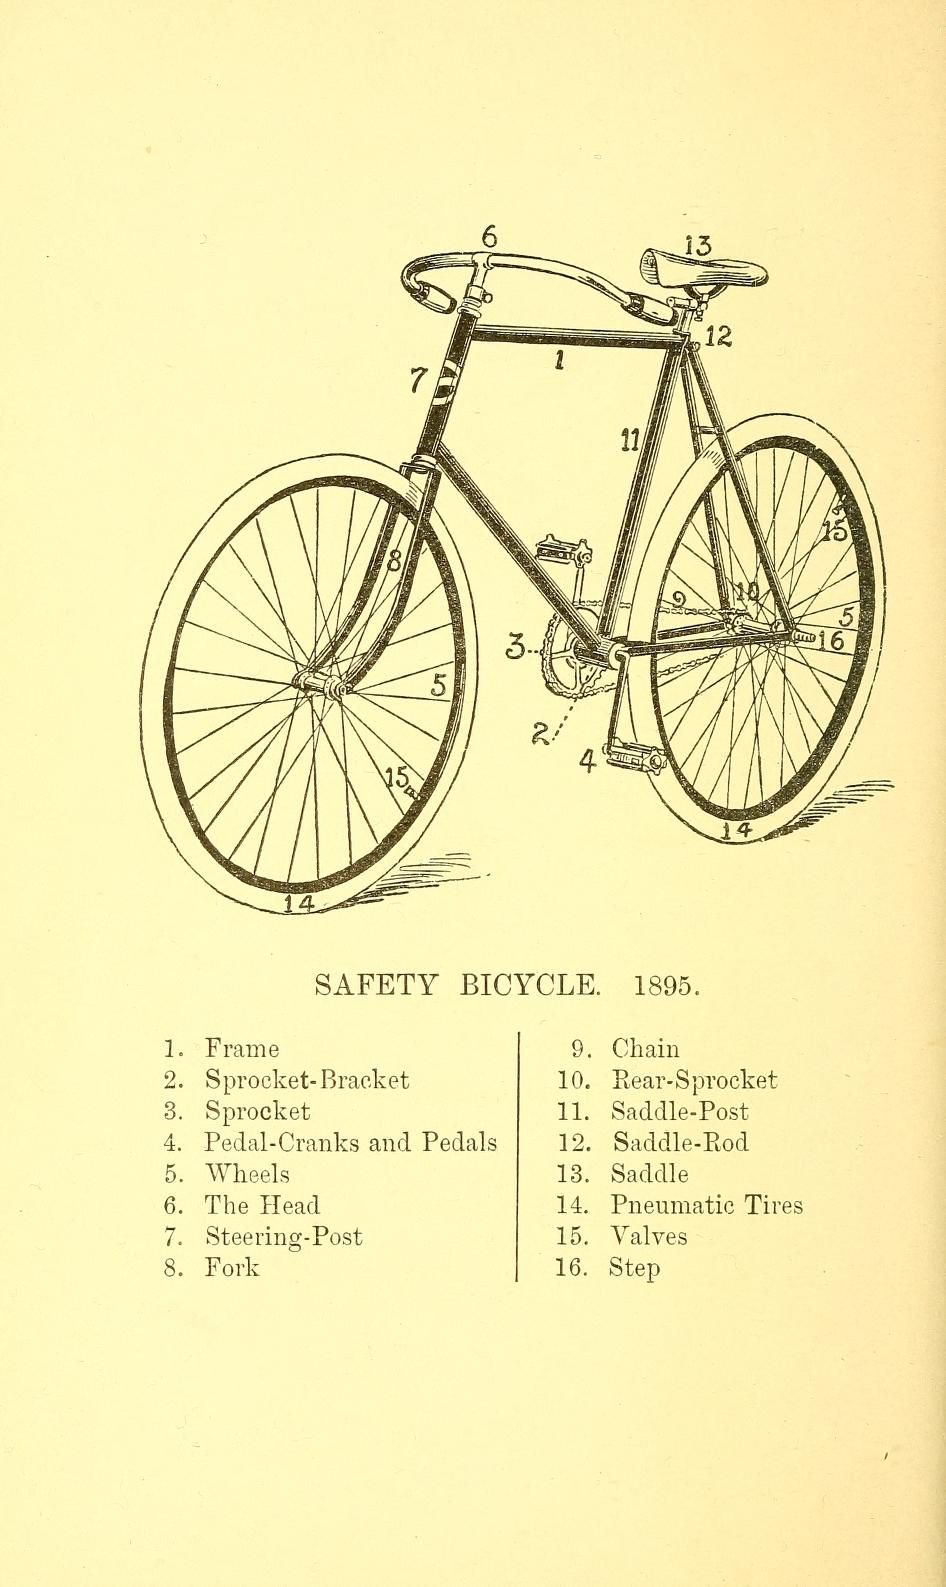 Pleasure-cycling | Ephemera 2 | Pinterest | Cycling and Ephemera